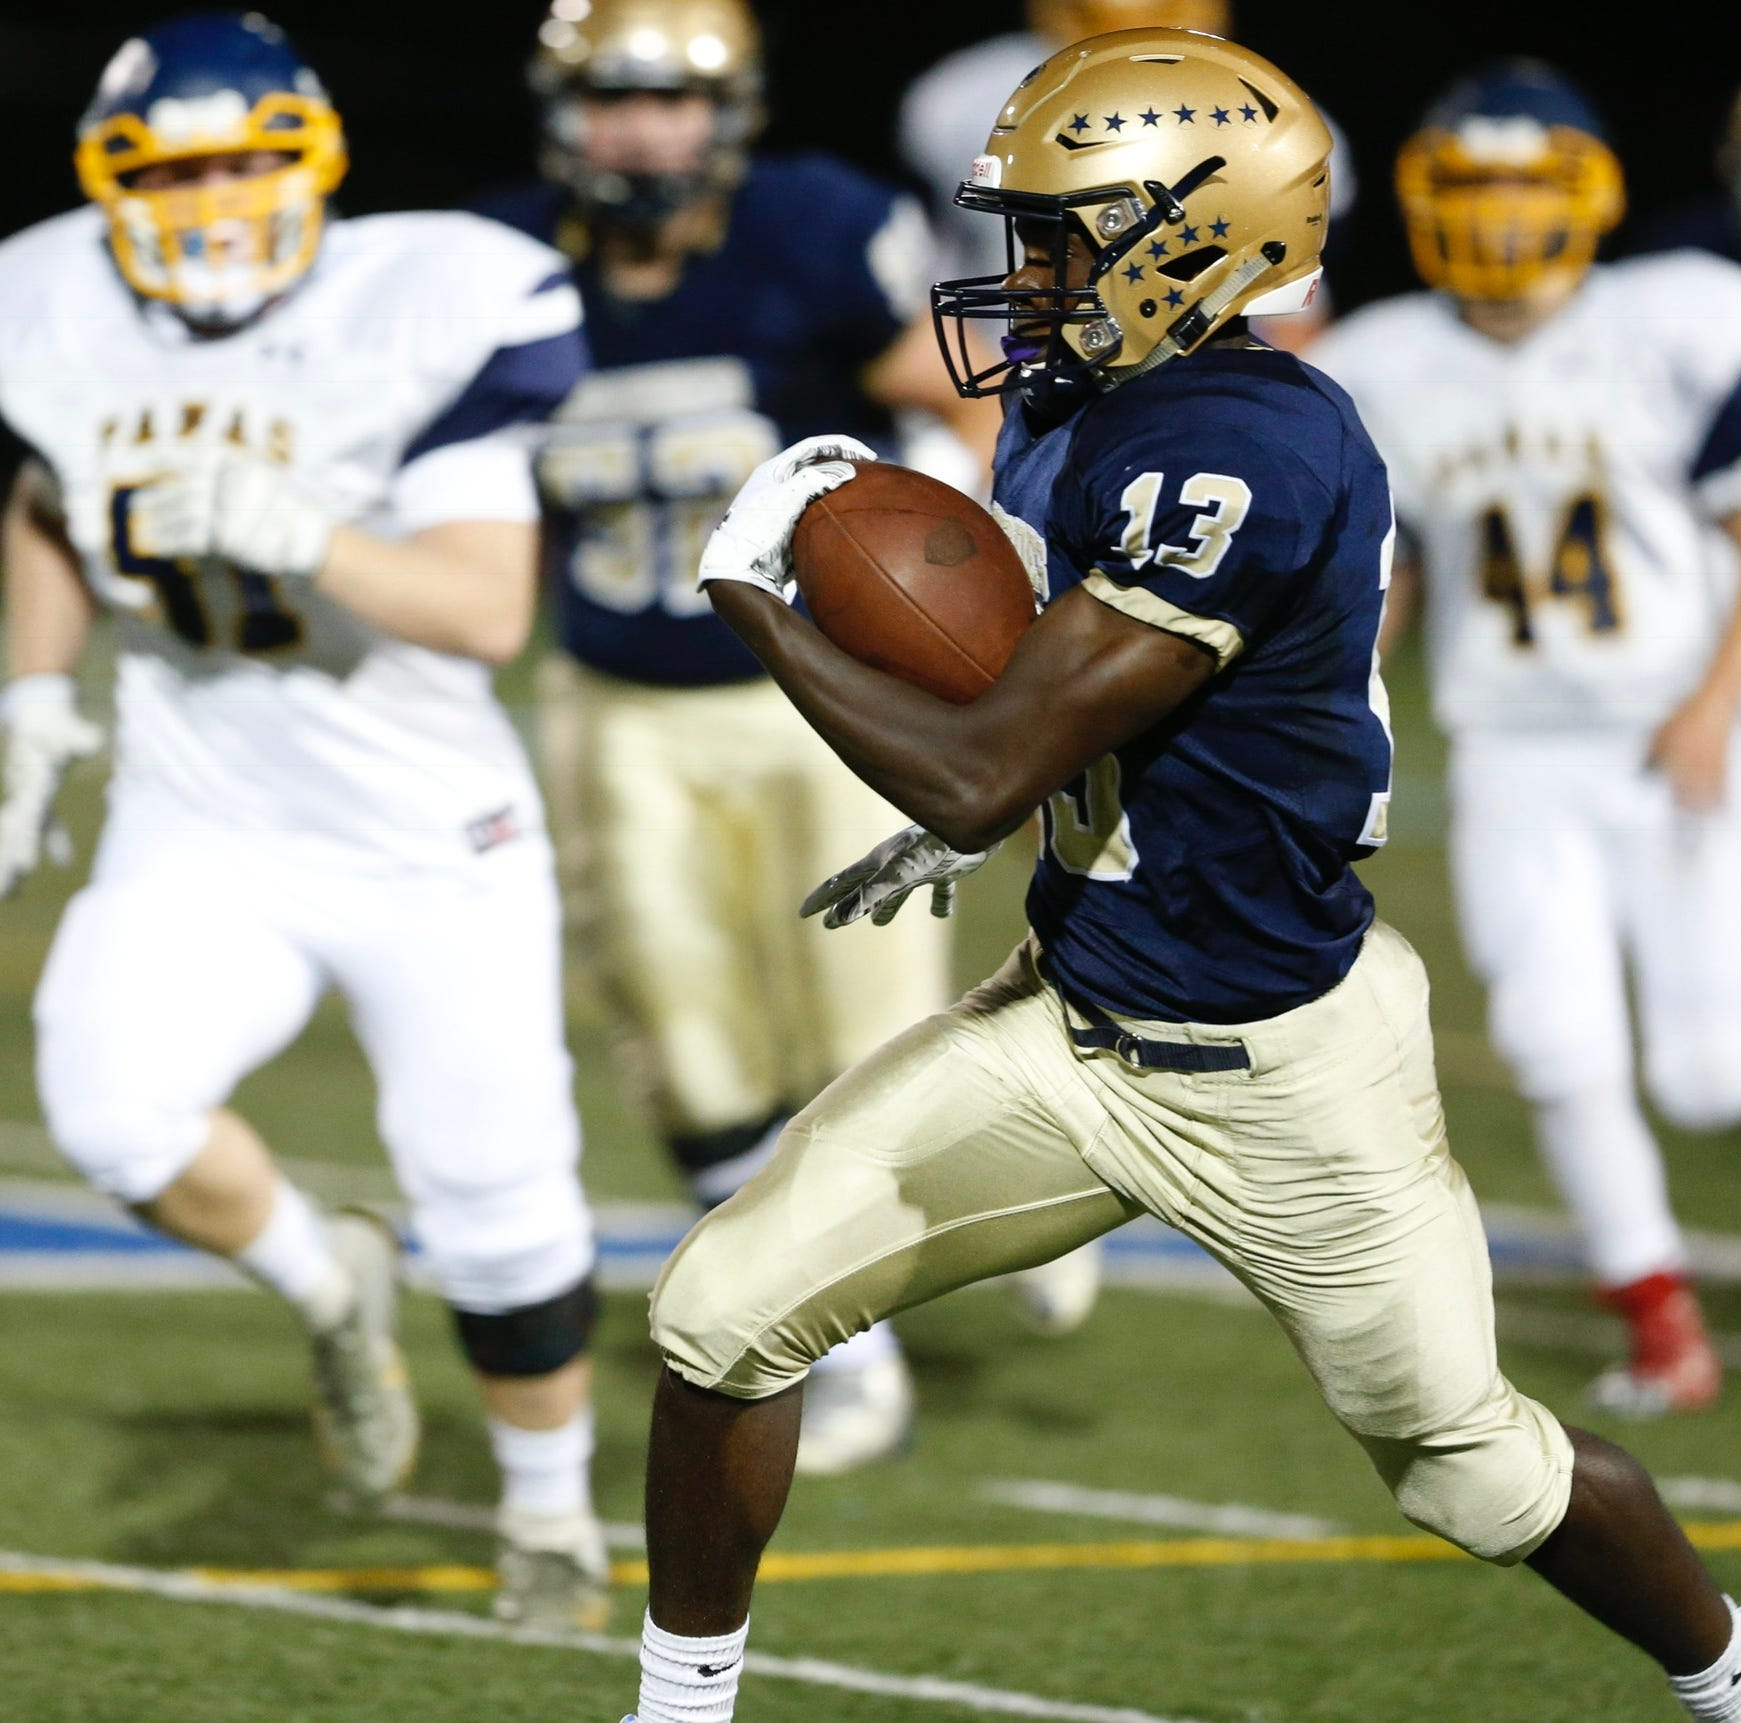 Business as usual: Lourdes football defeats Panas